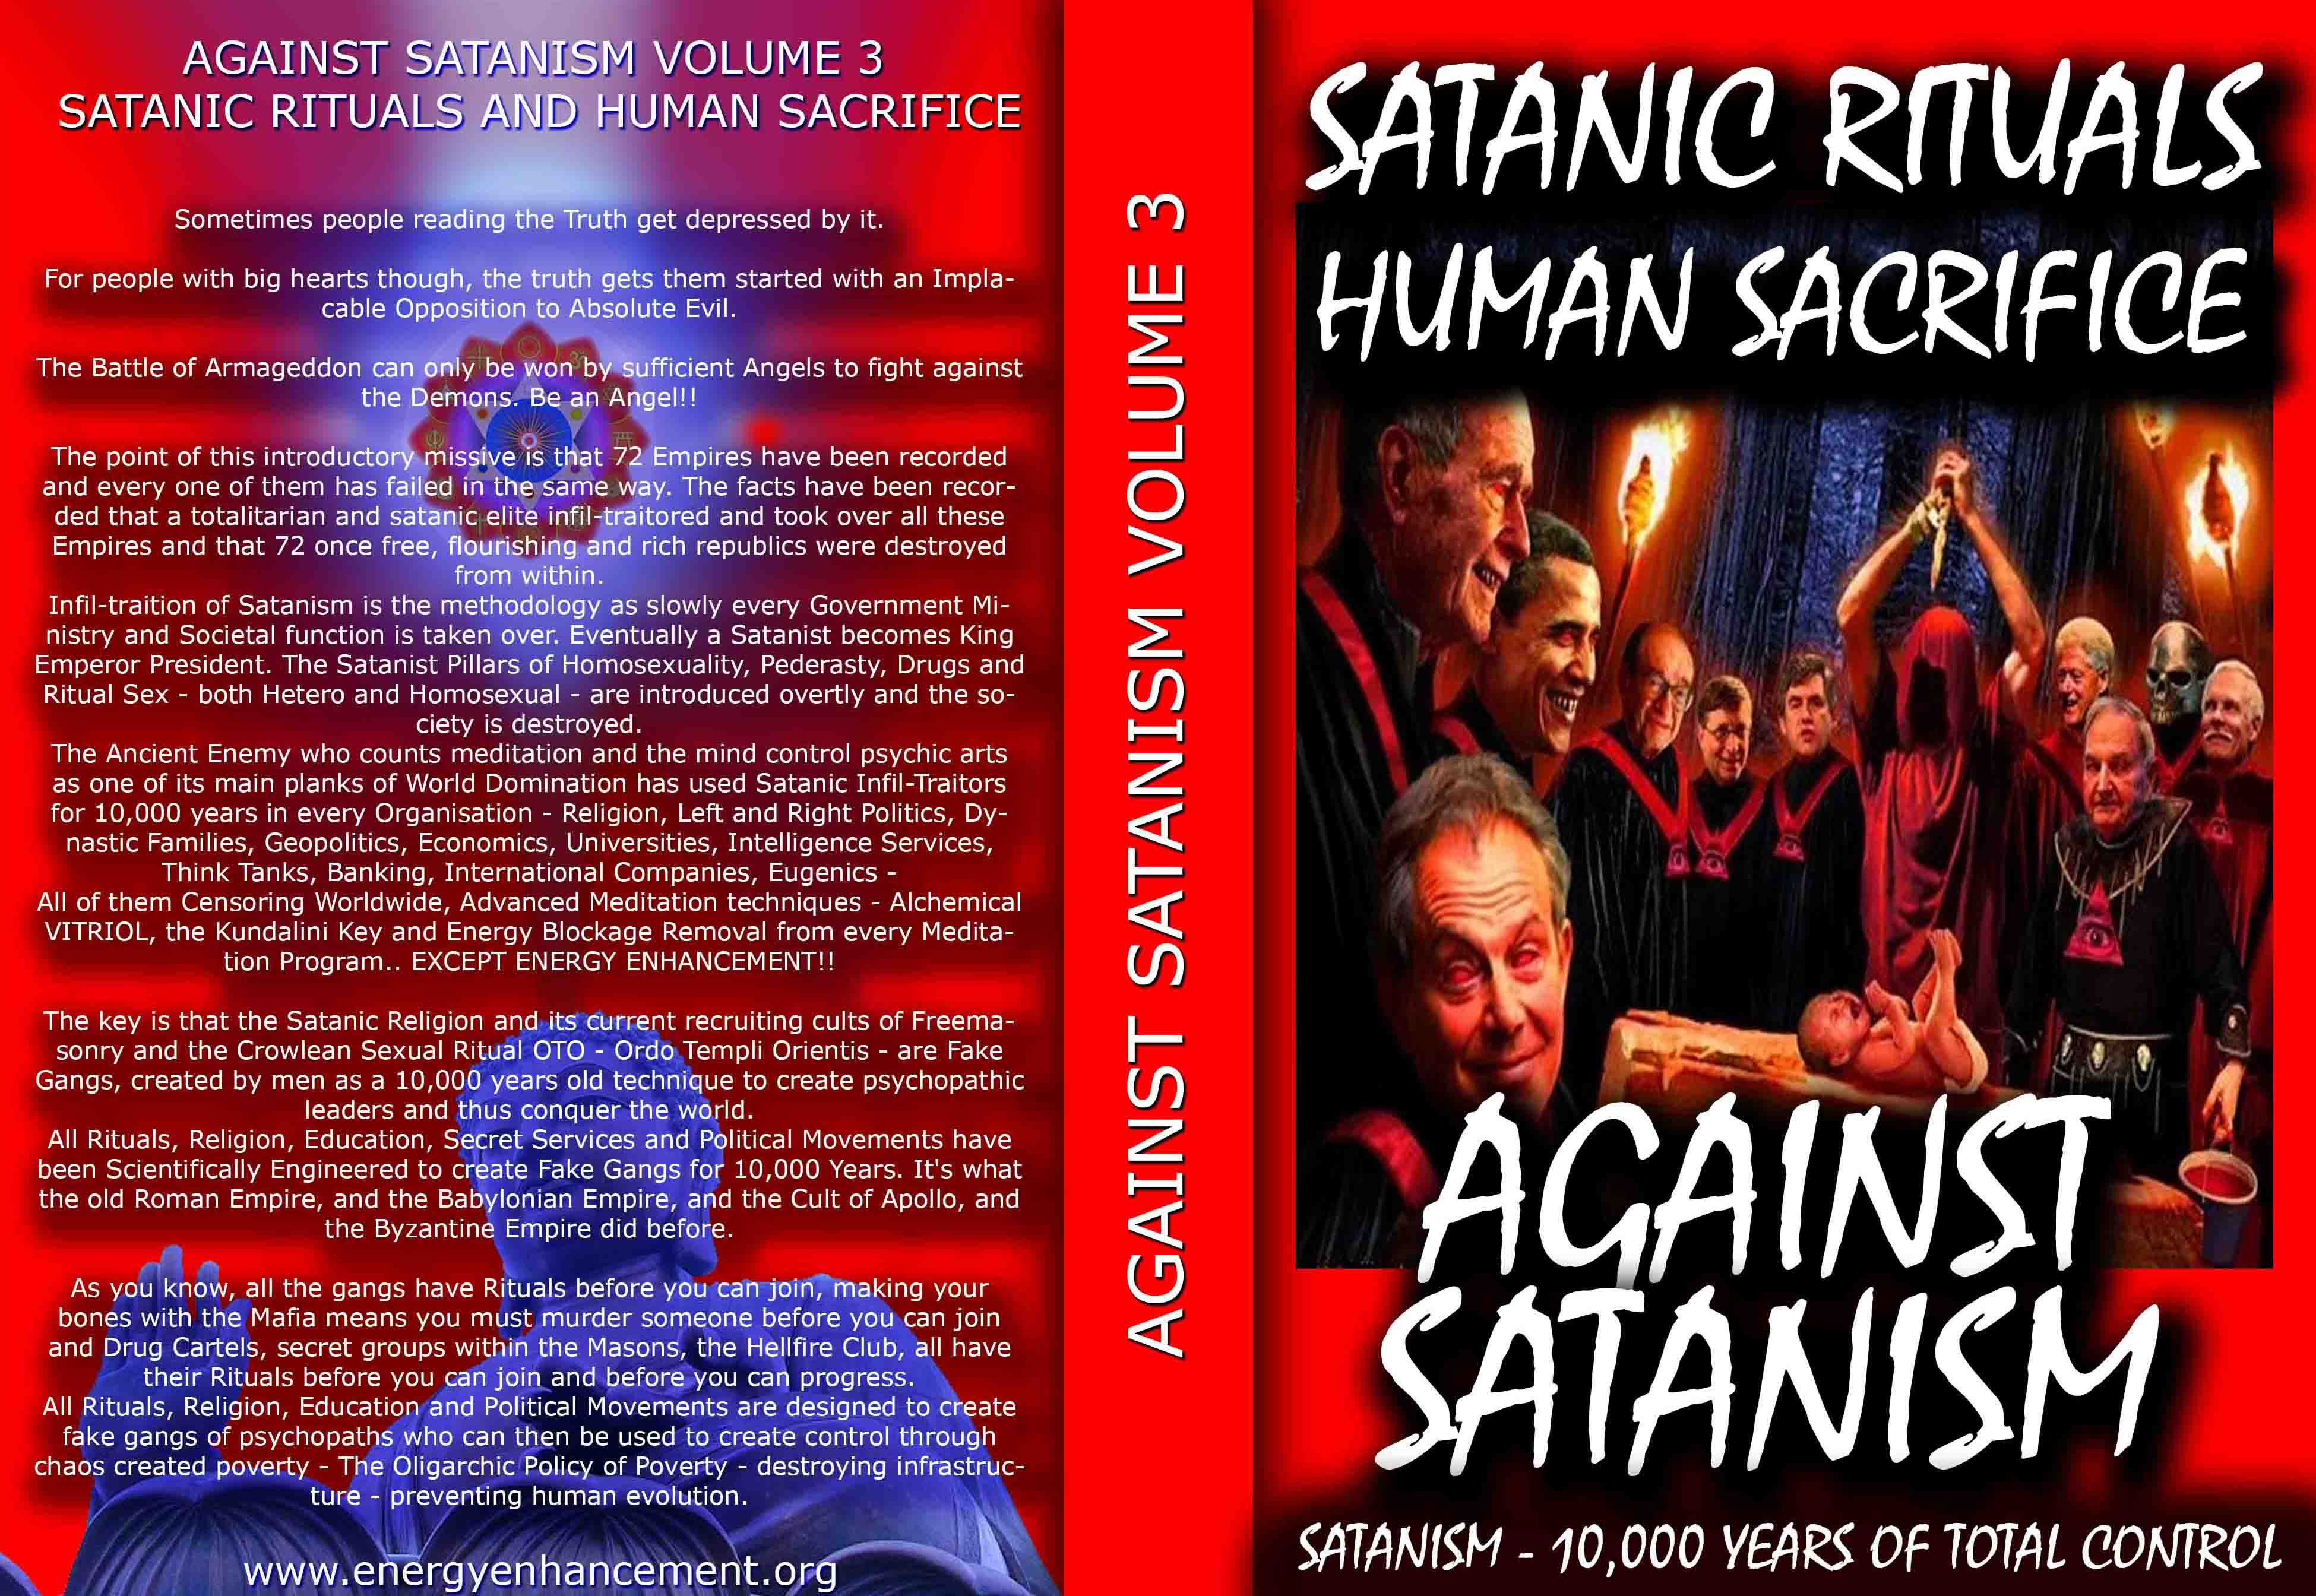 Description: Description: C:\wnew\Sacred-Energy\Against-Satanism-Volume-3\ANTI SATANIC 3.jpg